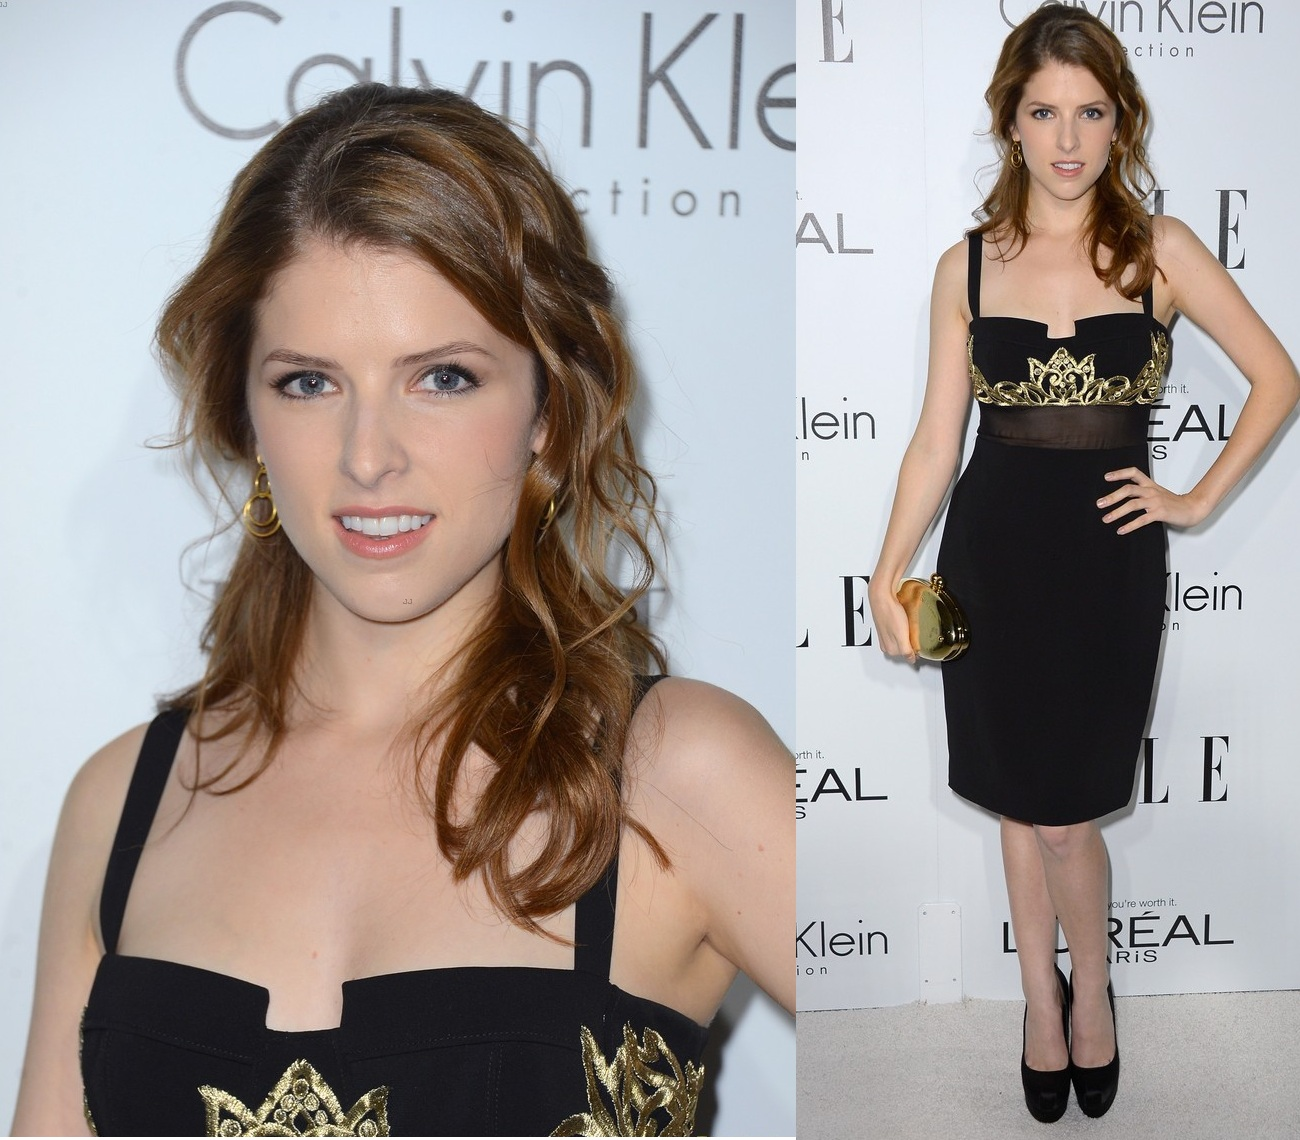 Anna Kendrick Up Skirt Image source: justjared, style